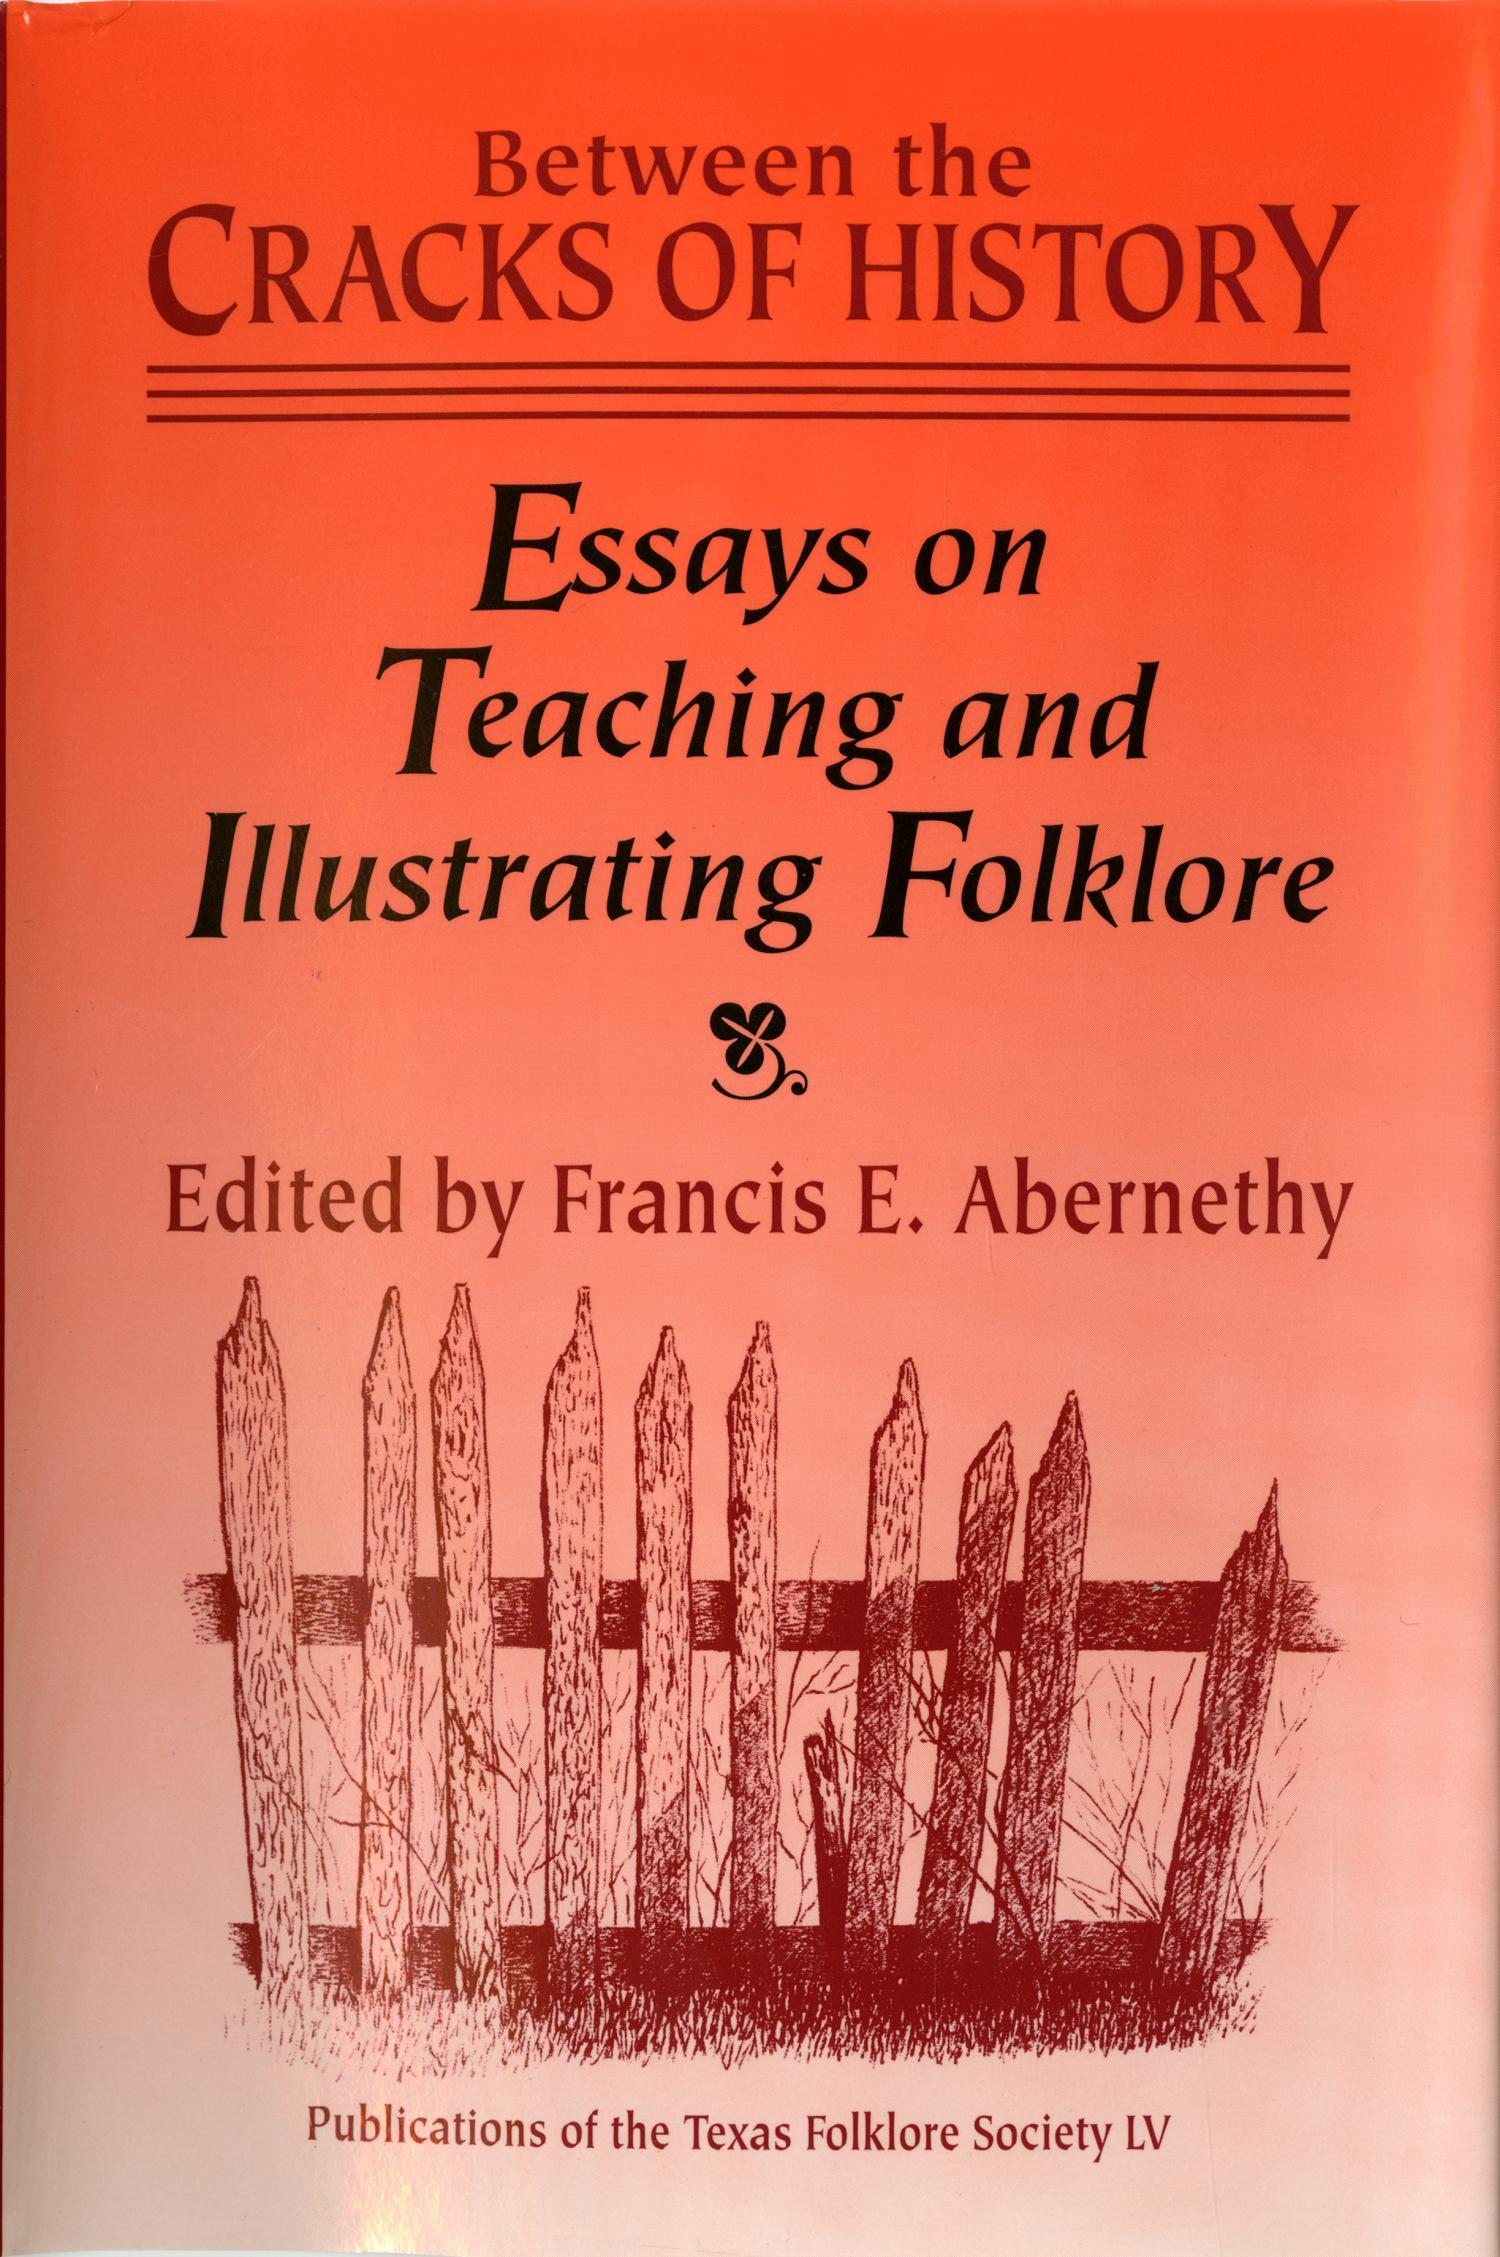 Between the Cracks of History: Essays on Teaching and Illustrating Folklore                                                                                                      Front Cover